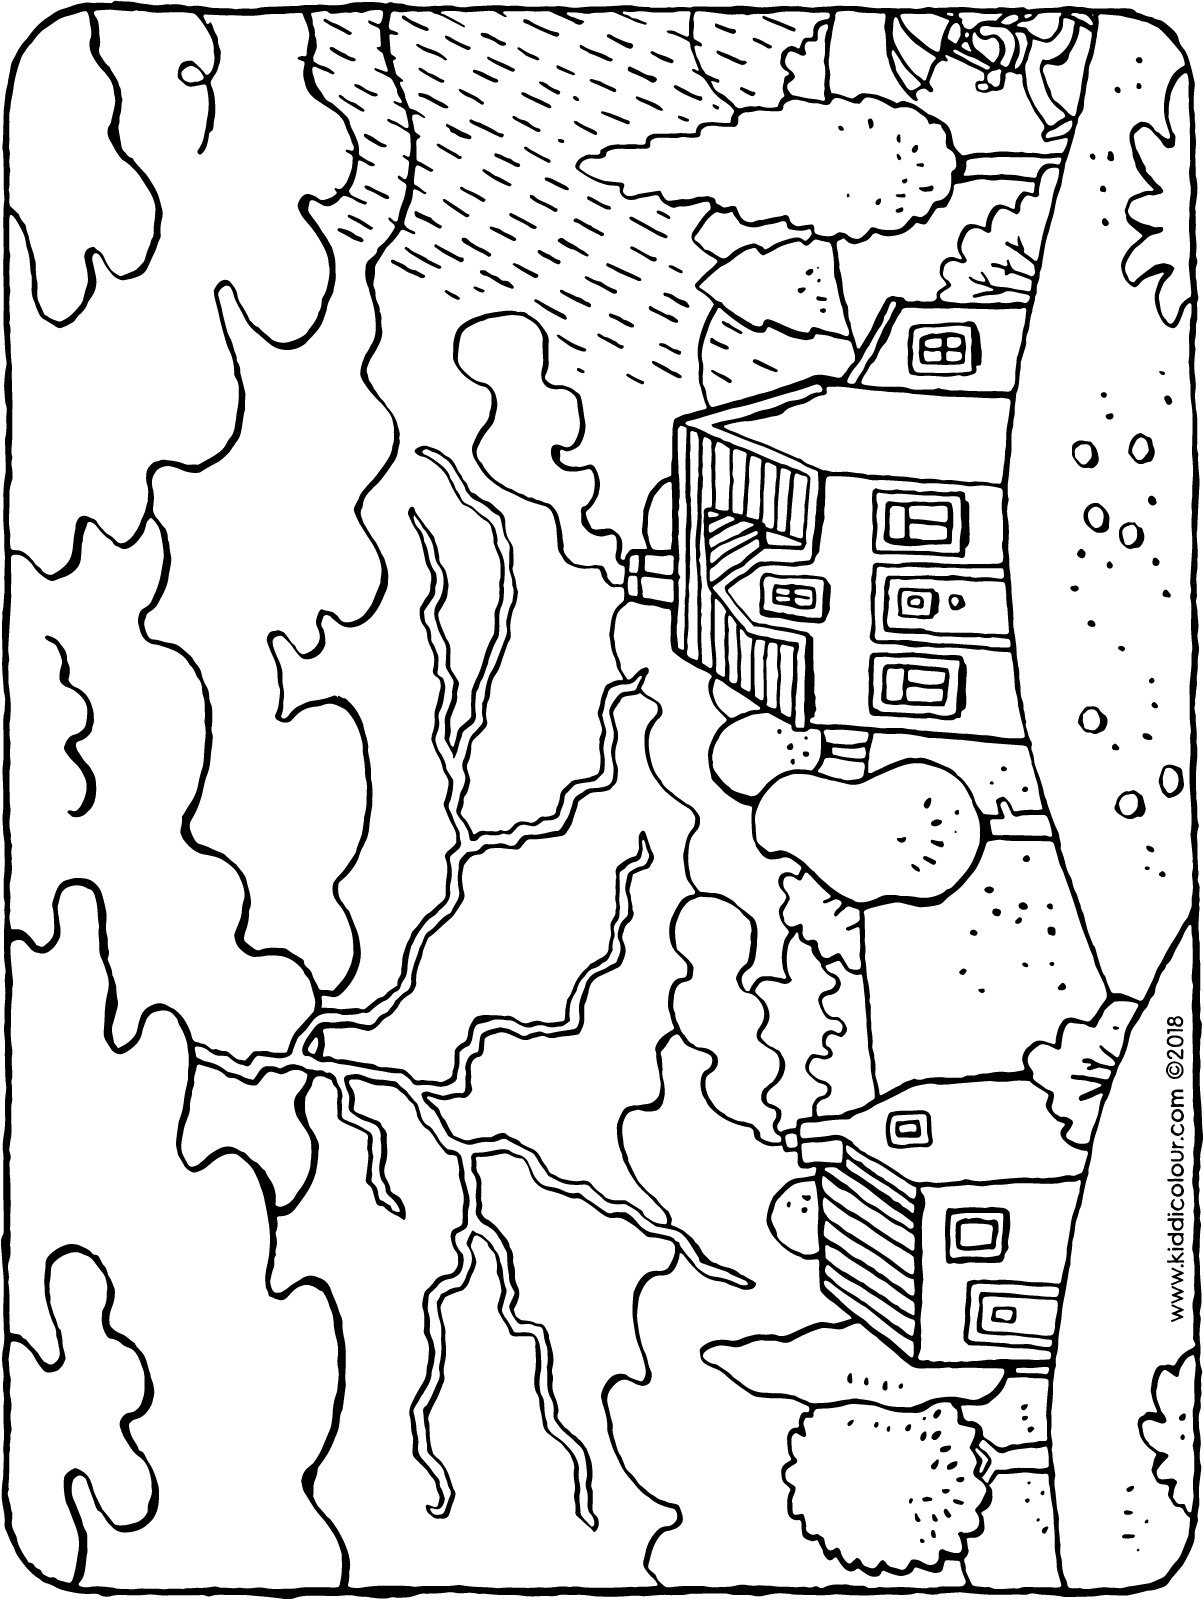 thunderstorm with thunder, lightening and rain colouring page drawing picture 01H